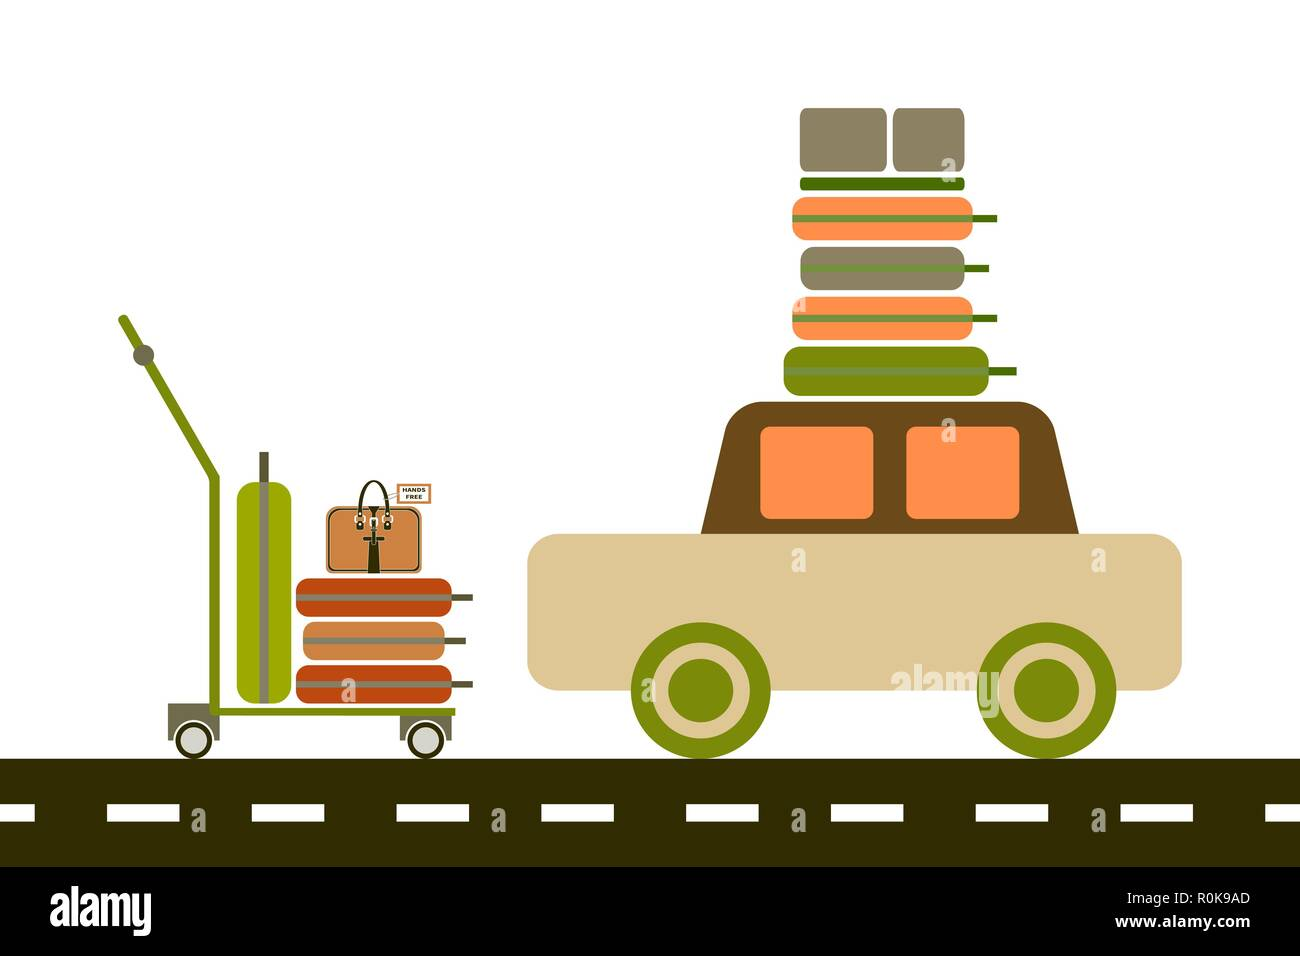 Vector flat illustration. Luggage trolley with suitcases. Car with luggage on the roof. The baggage is on the luggage trolley. For infographic, catalo - Stock Vector